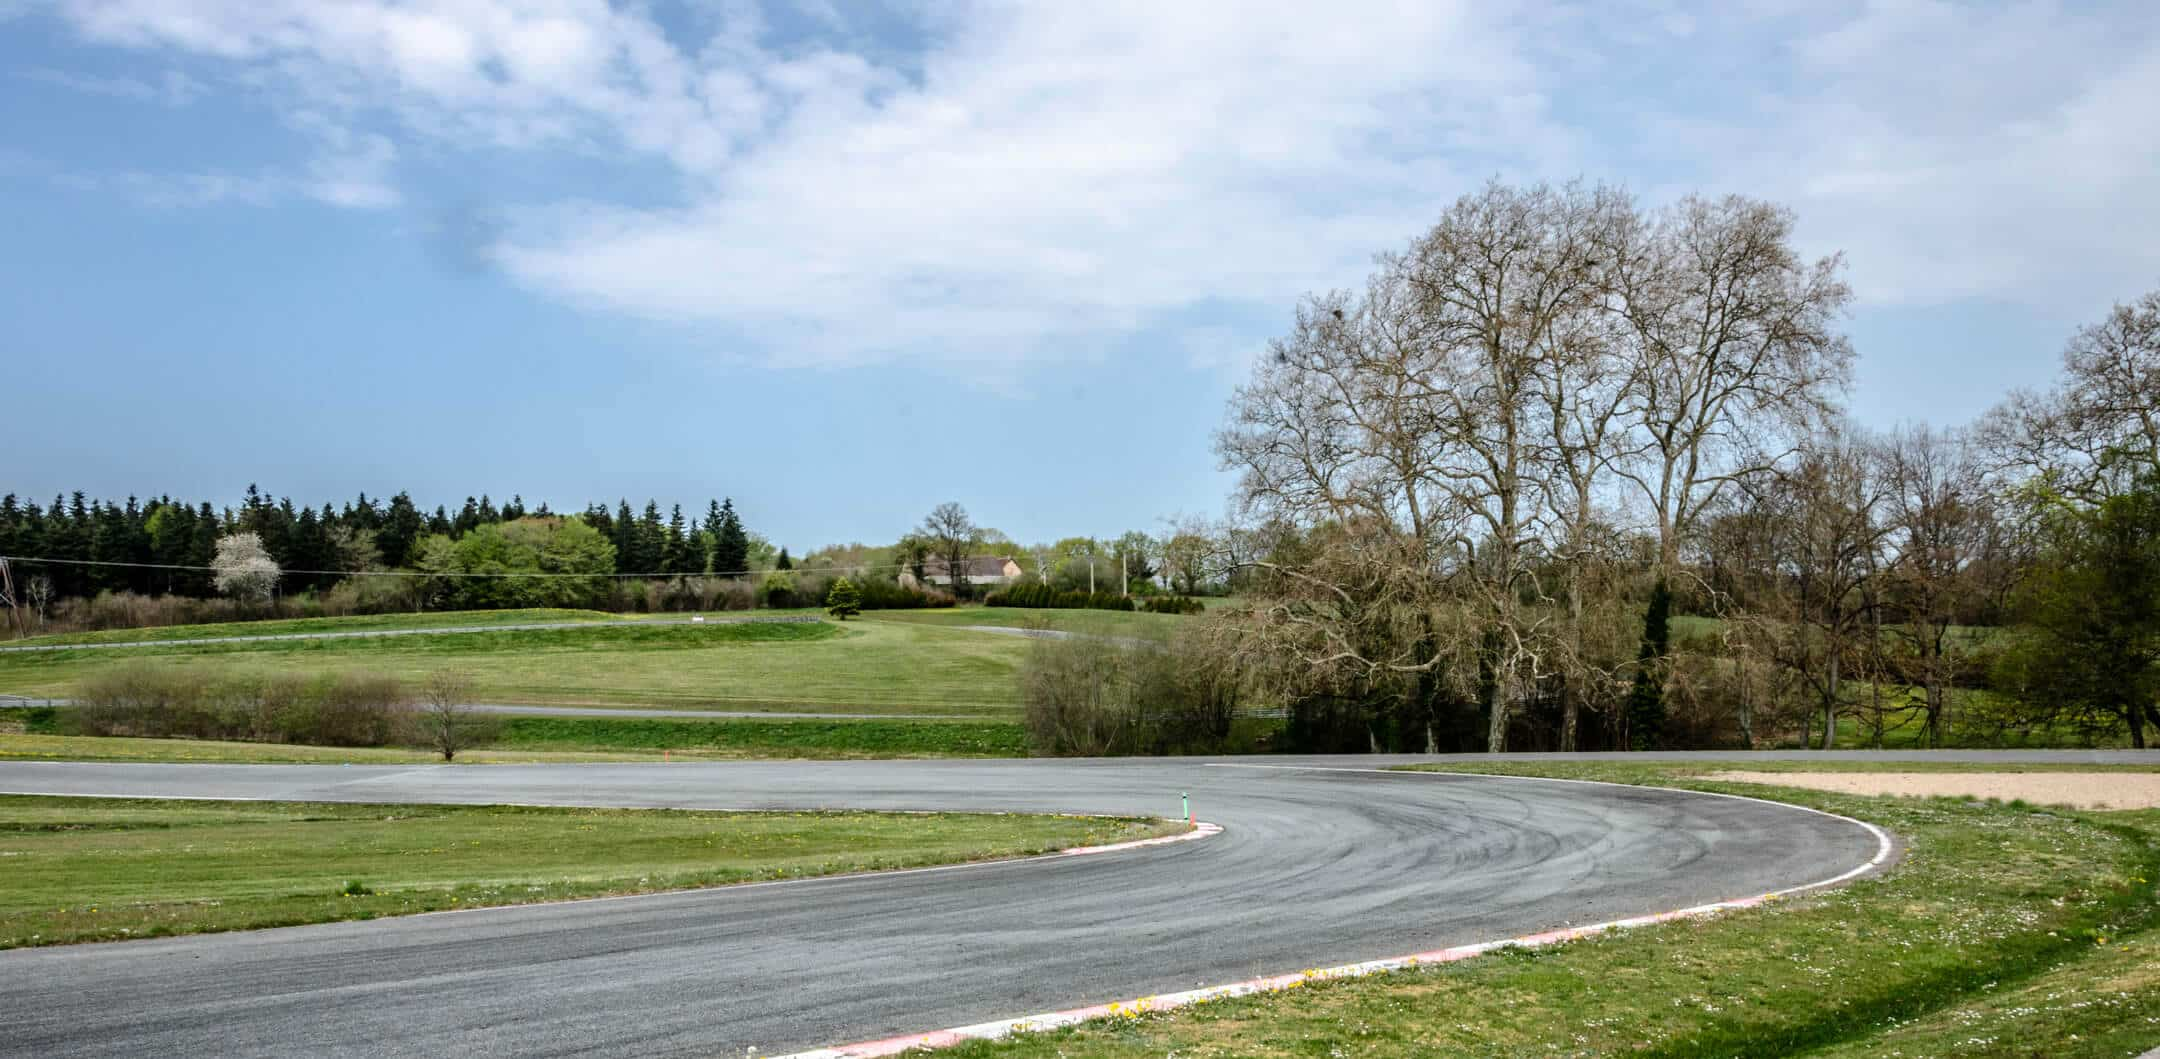 20190420-Journee-cricuit-trackday-mornay-gueret-creuse-2019-41